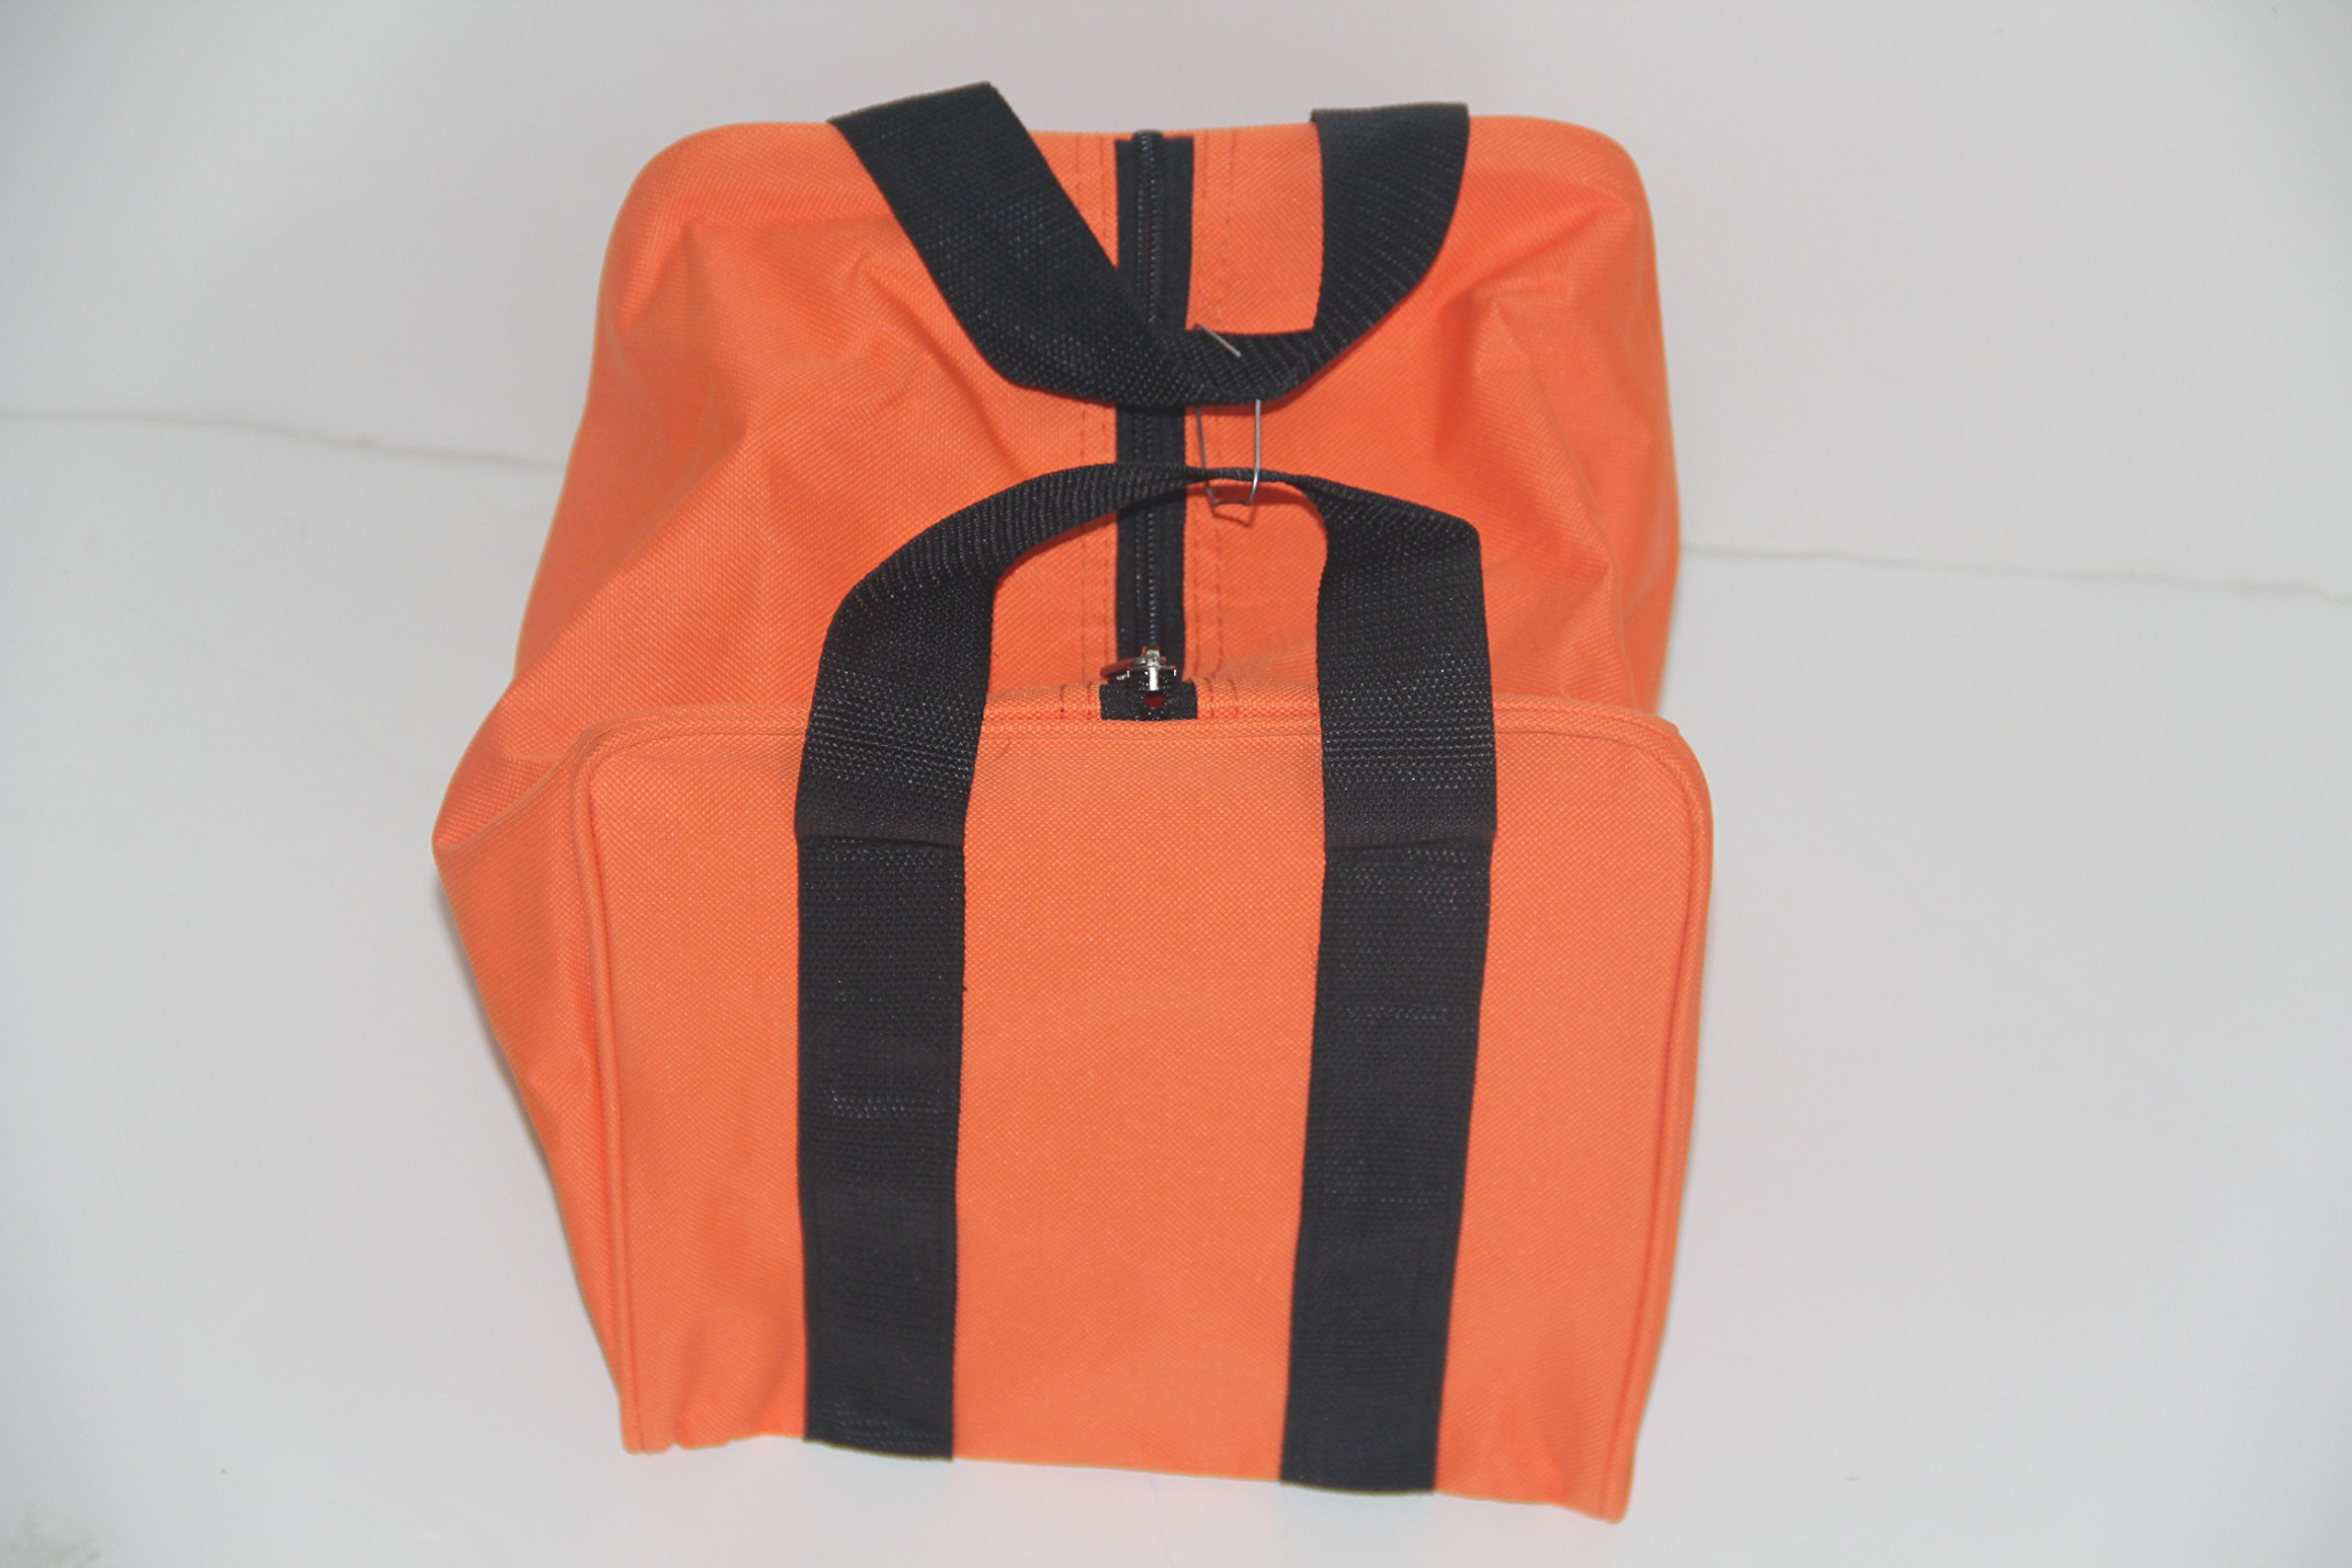 Premium Quality - Extra Heavy Duty Nylon Bocce Bag - Orange with Black Handles